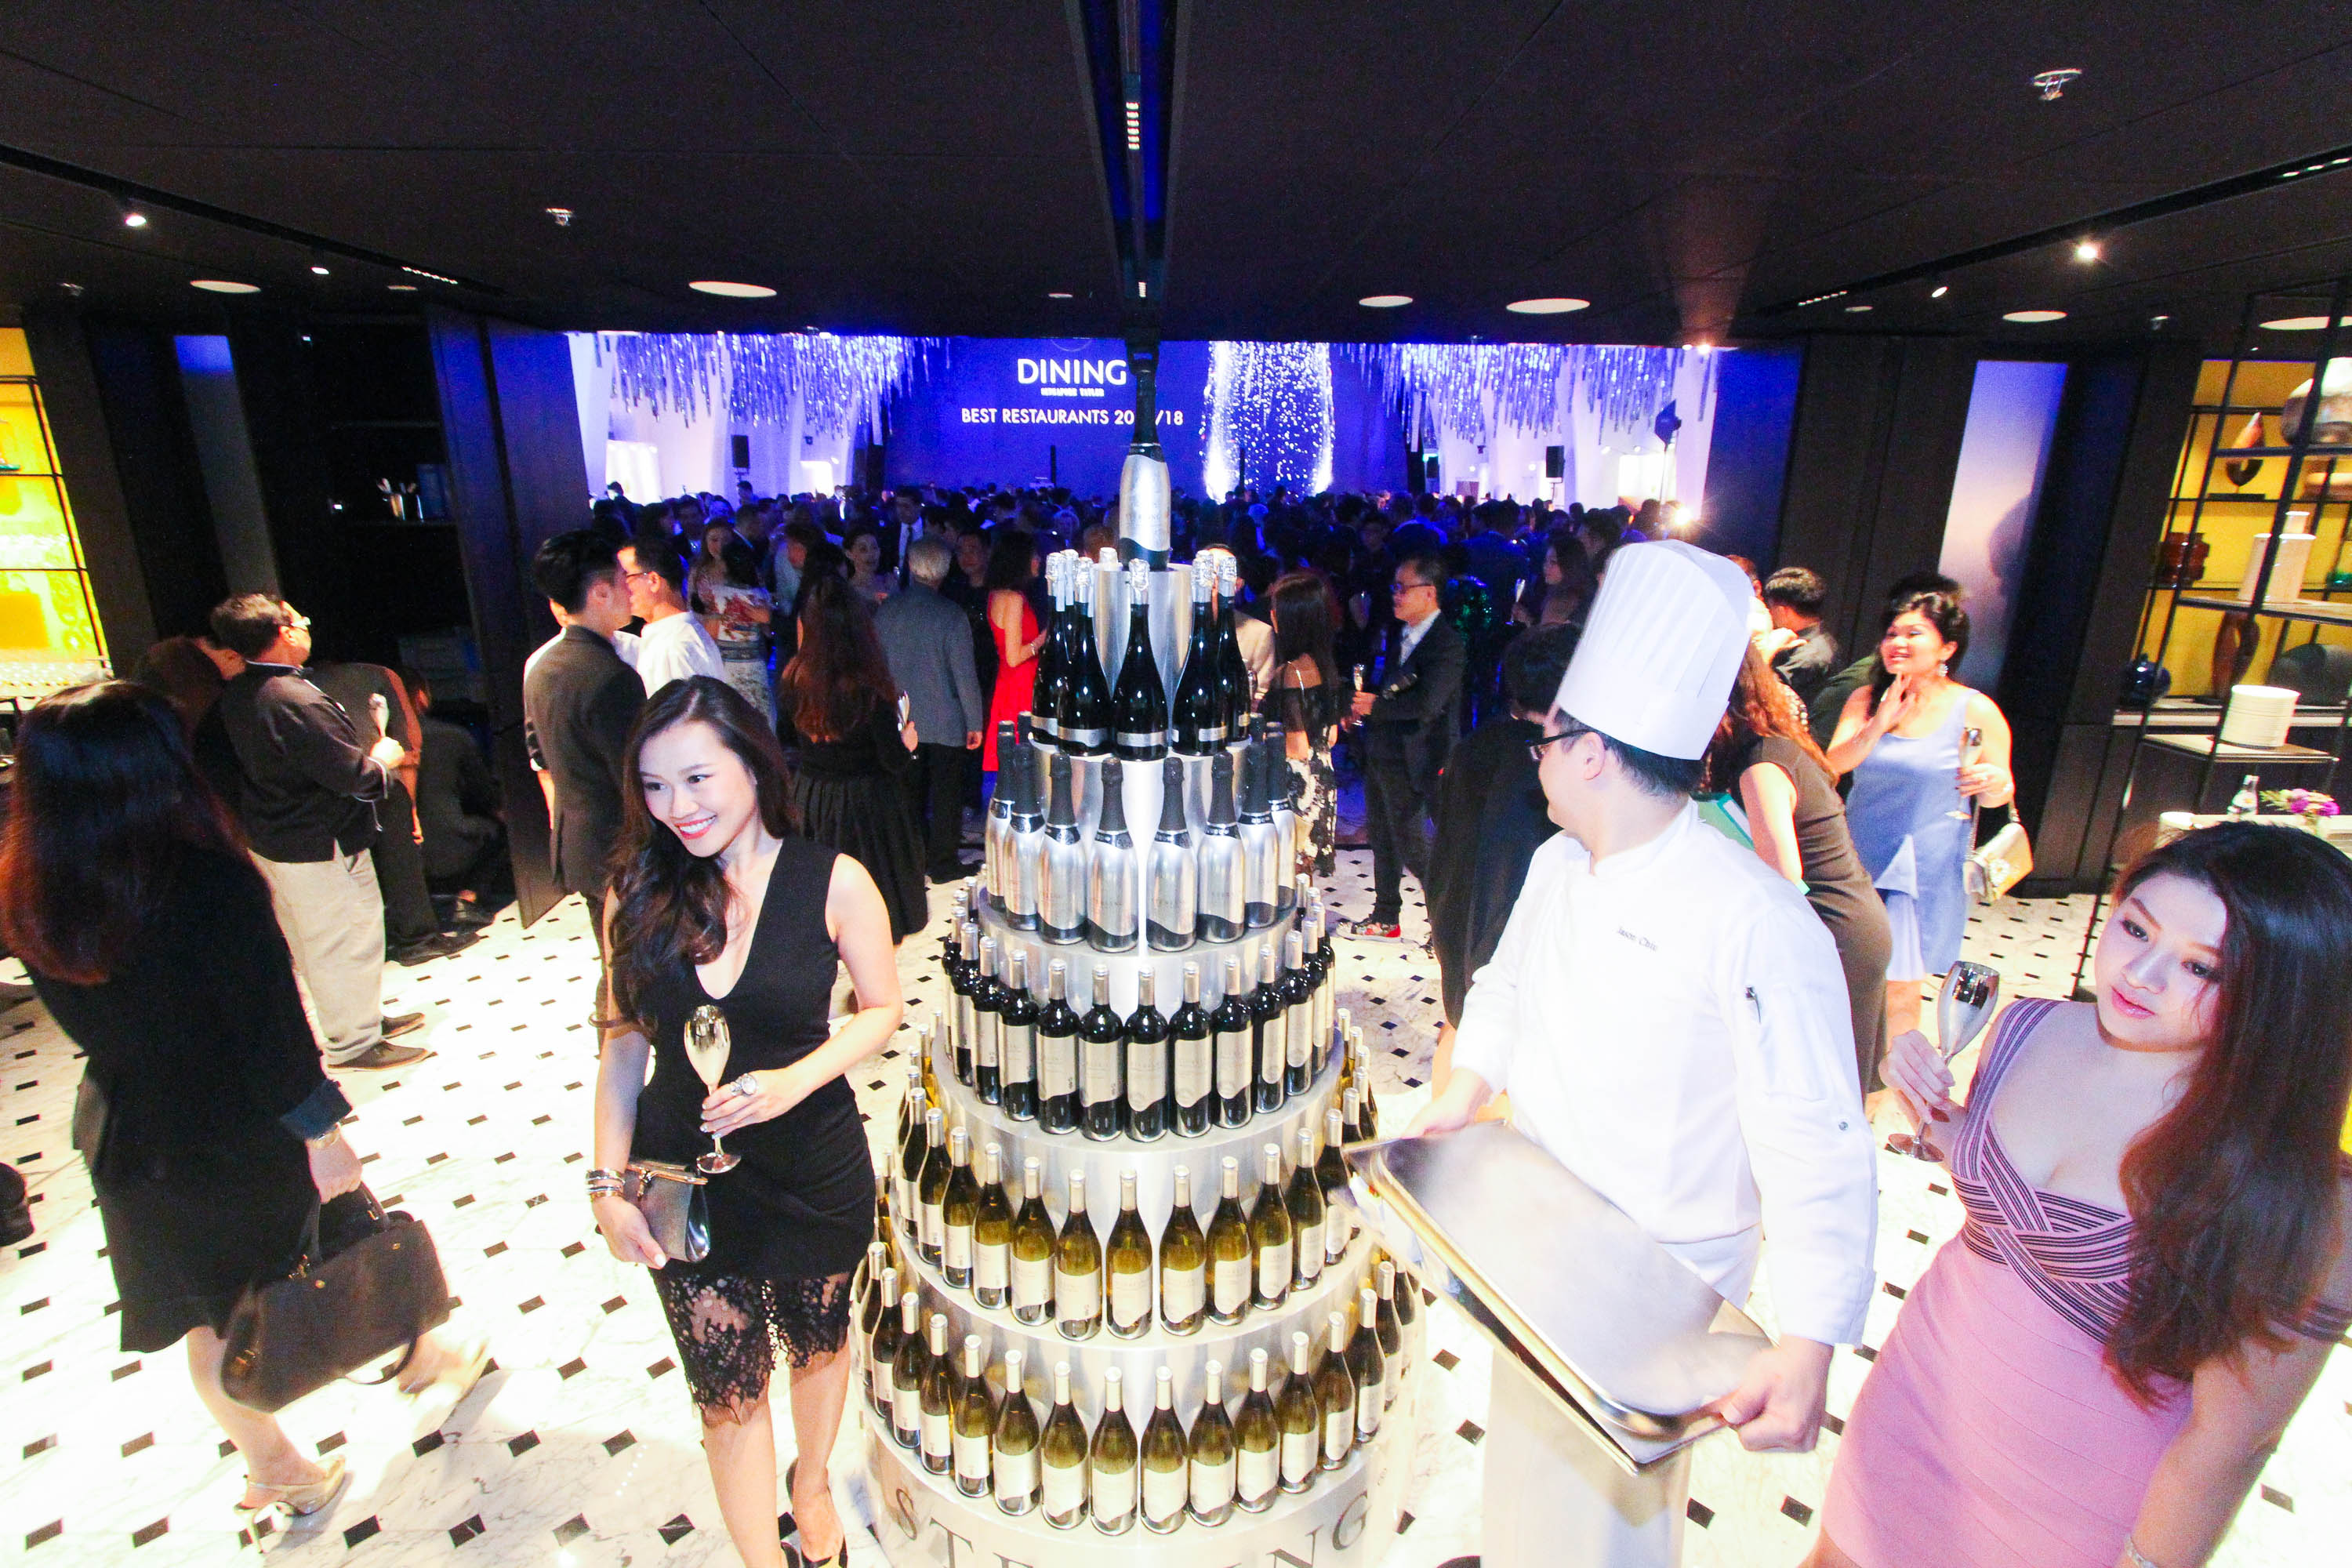 The wine tower, which was one of the most Instagrammed decor of the night